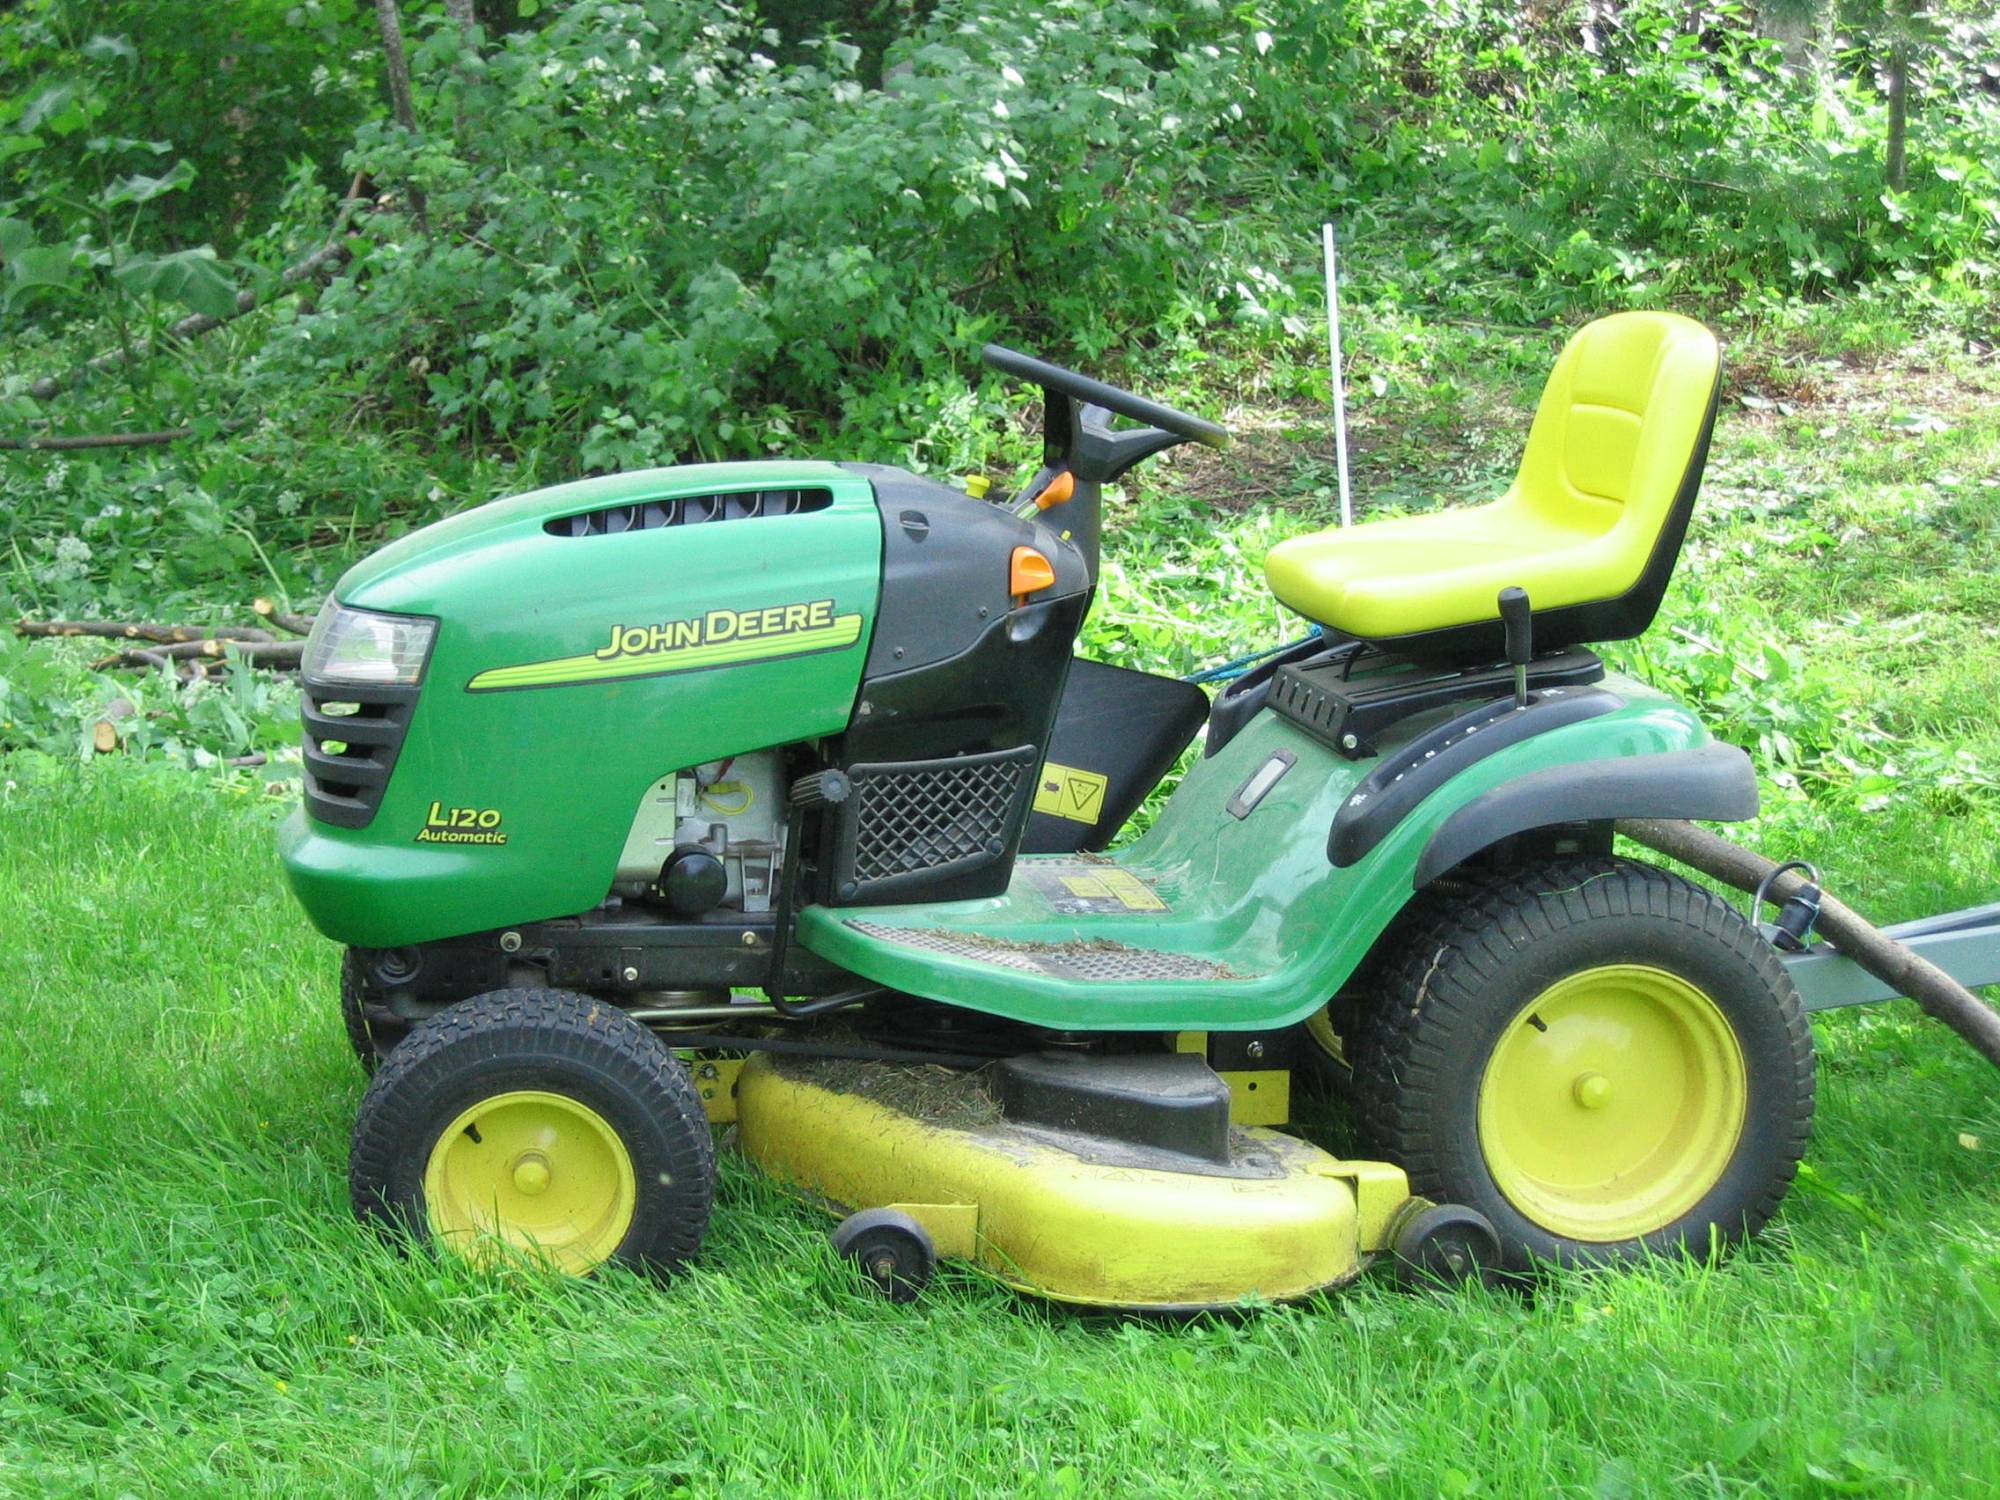 hight resolution of john deere lawn tractors images pictures becuo